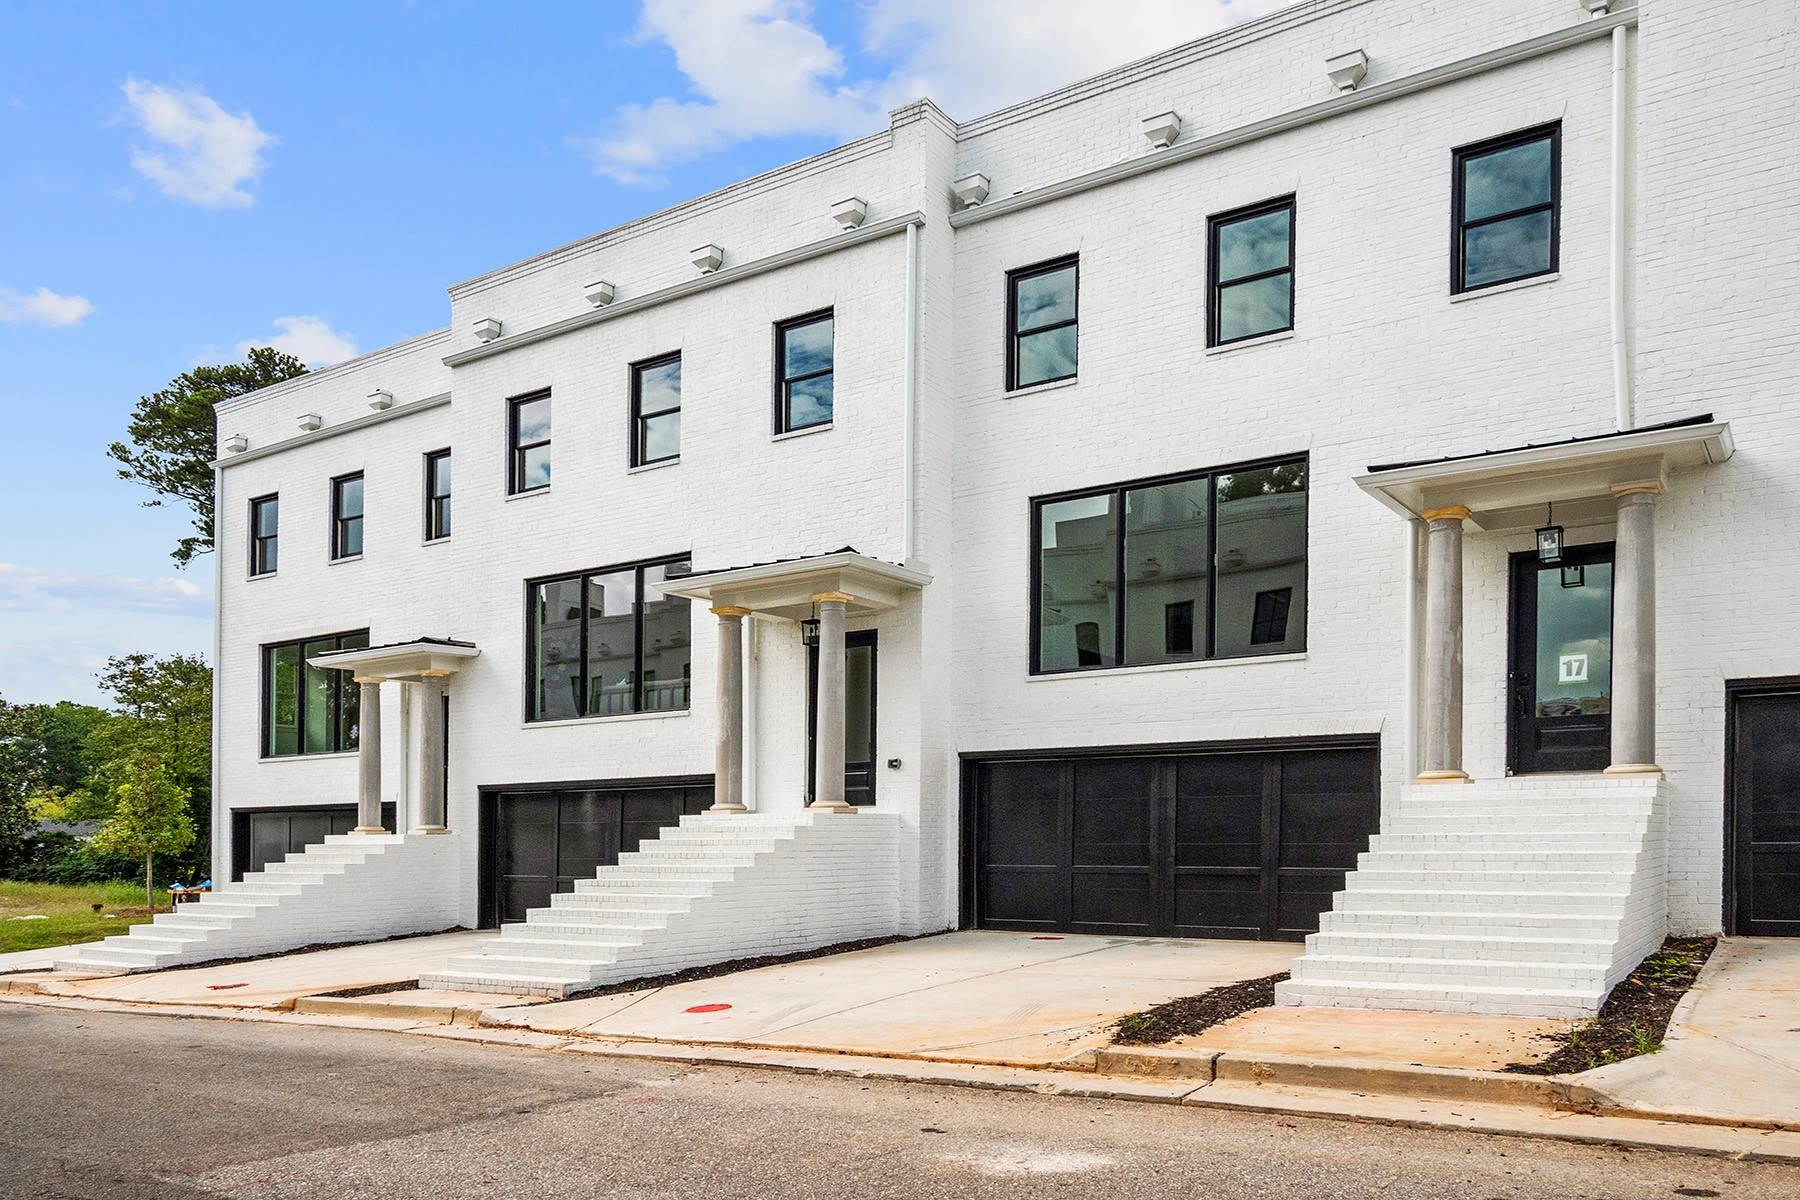 townhouses for Sale at Stunning Townhome Located in the Heart of Buckhead 3667 Peachtree Road NE, No. 19 Atlanta, Georgia 30319 United States